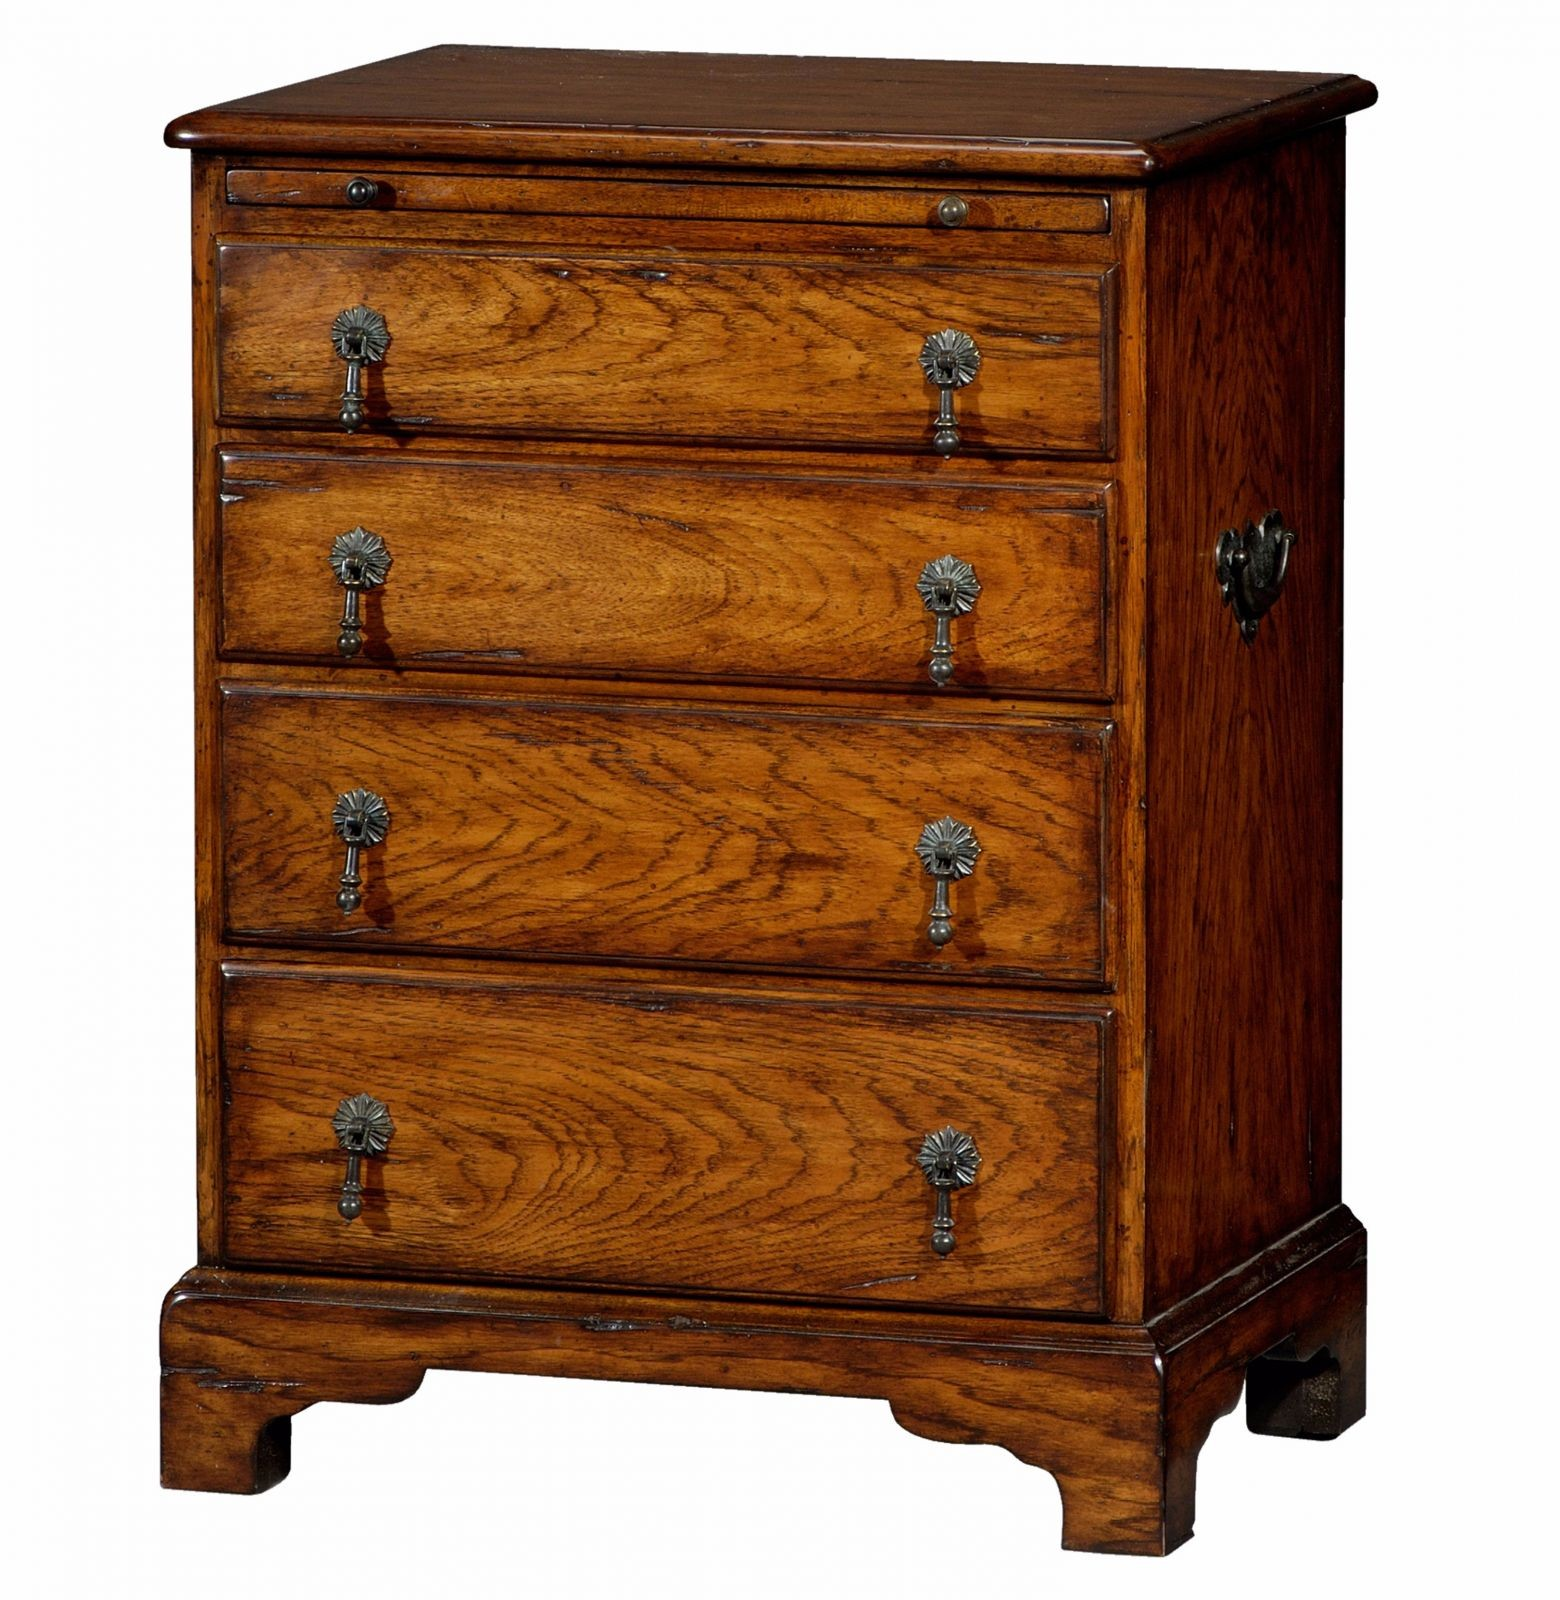 A hickory bedside chest of drawers